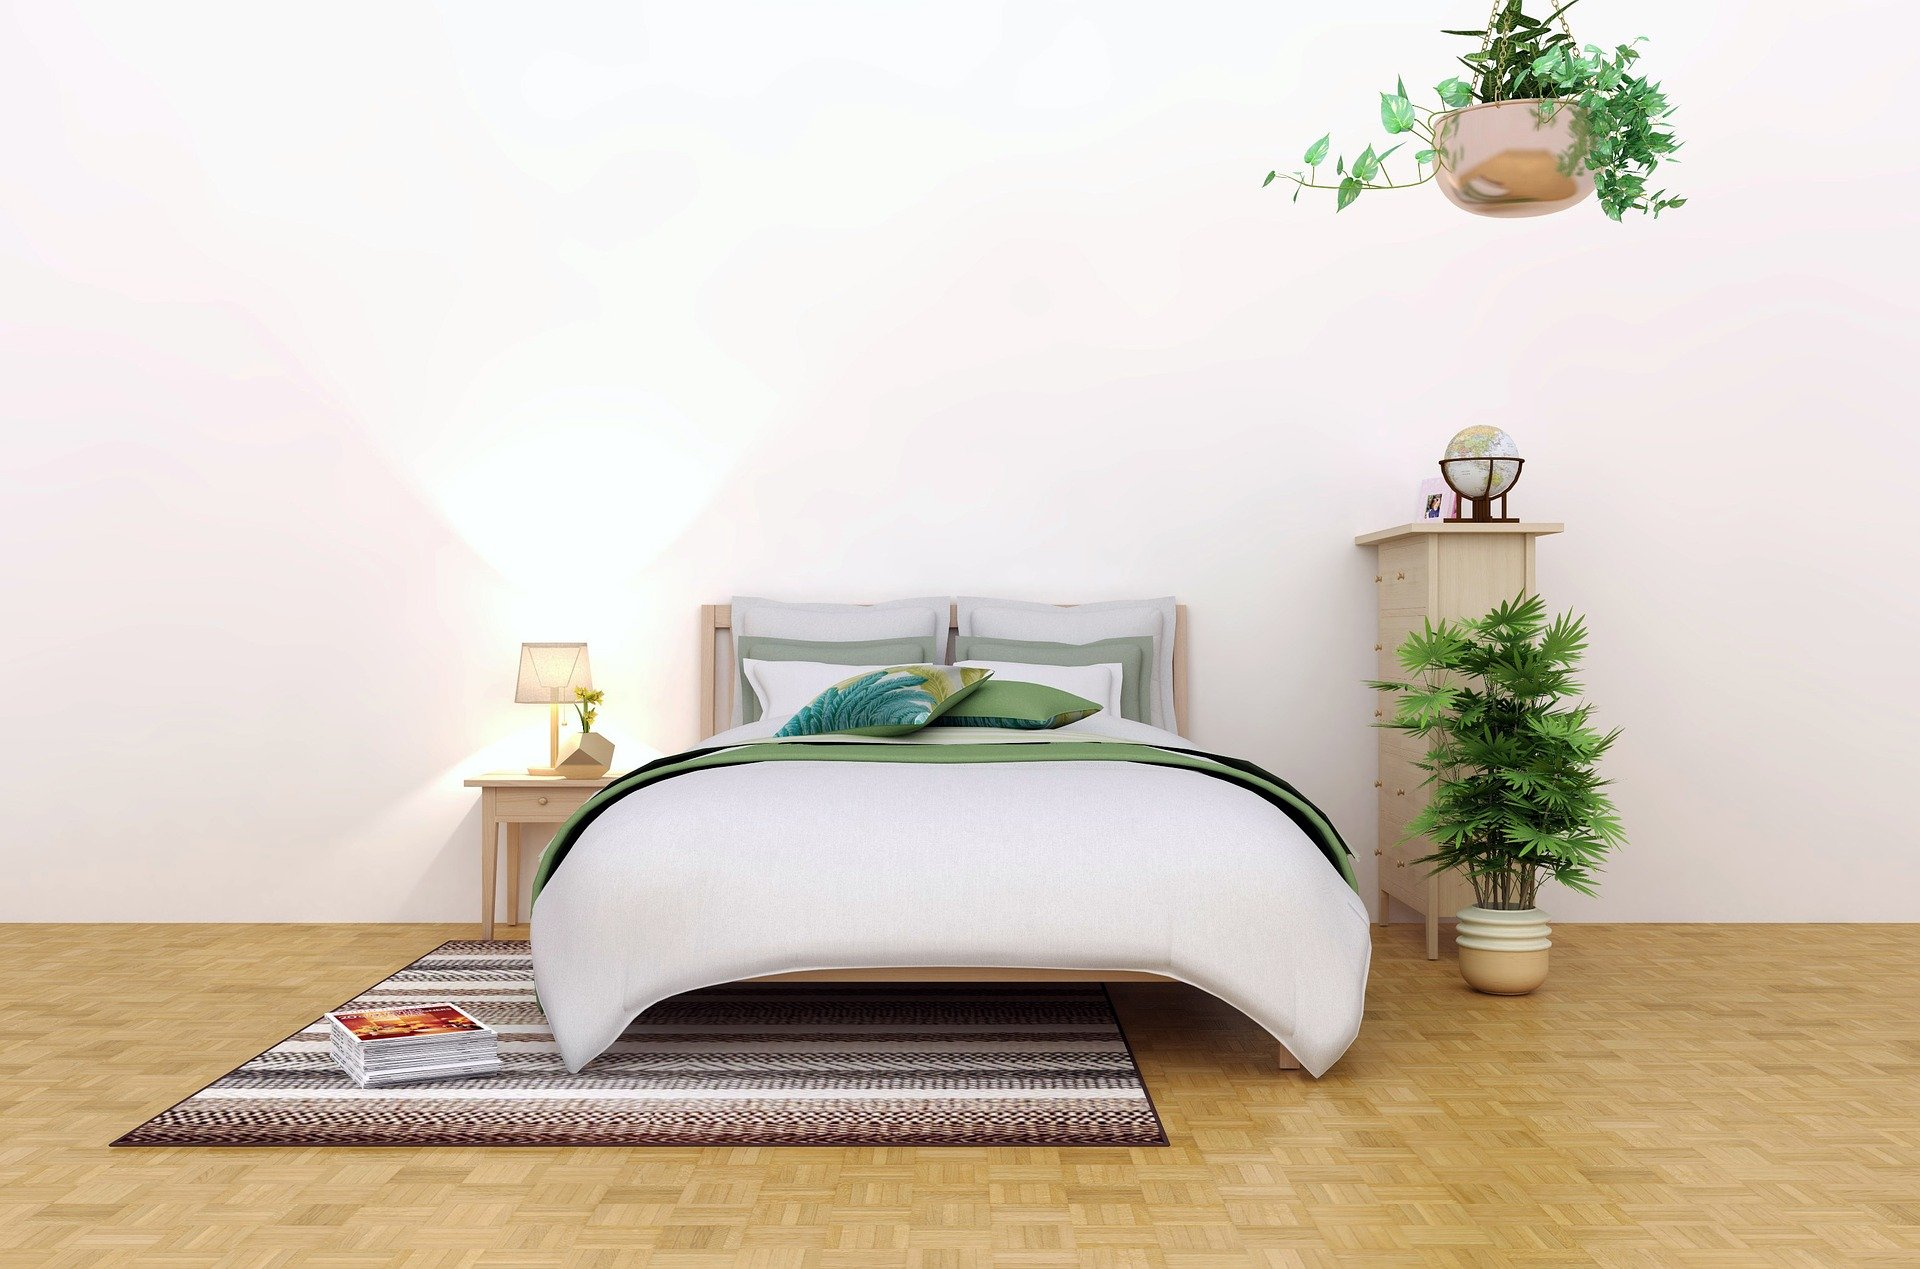 20 Cool Things You Can Add to Your Bedroom